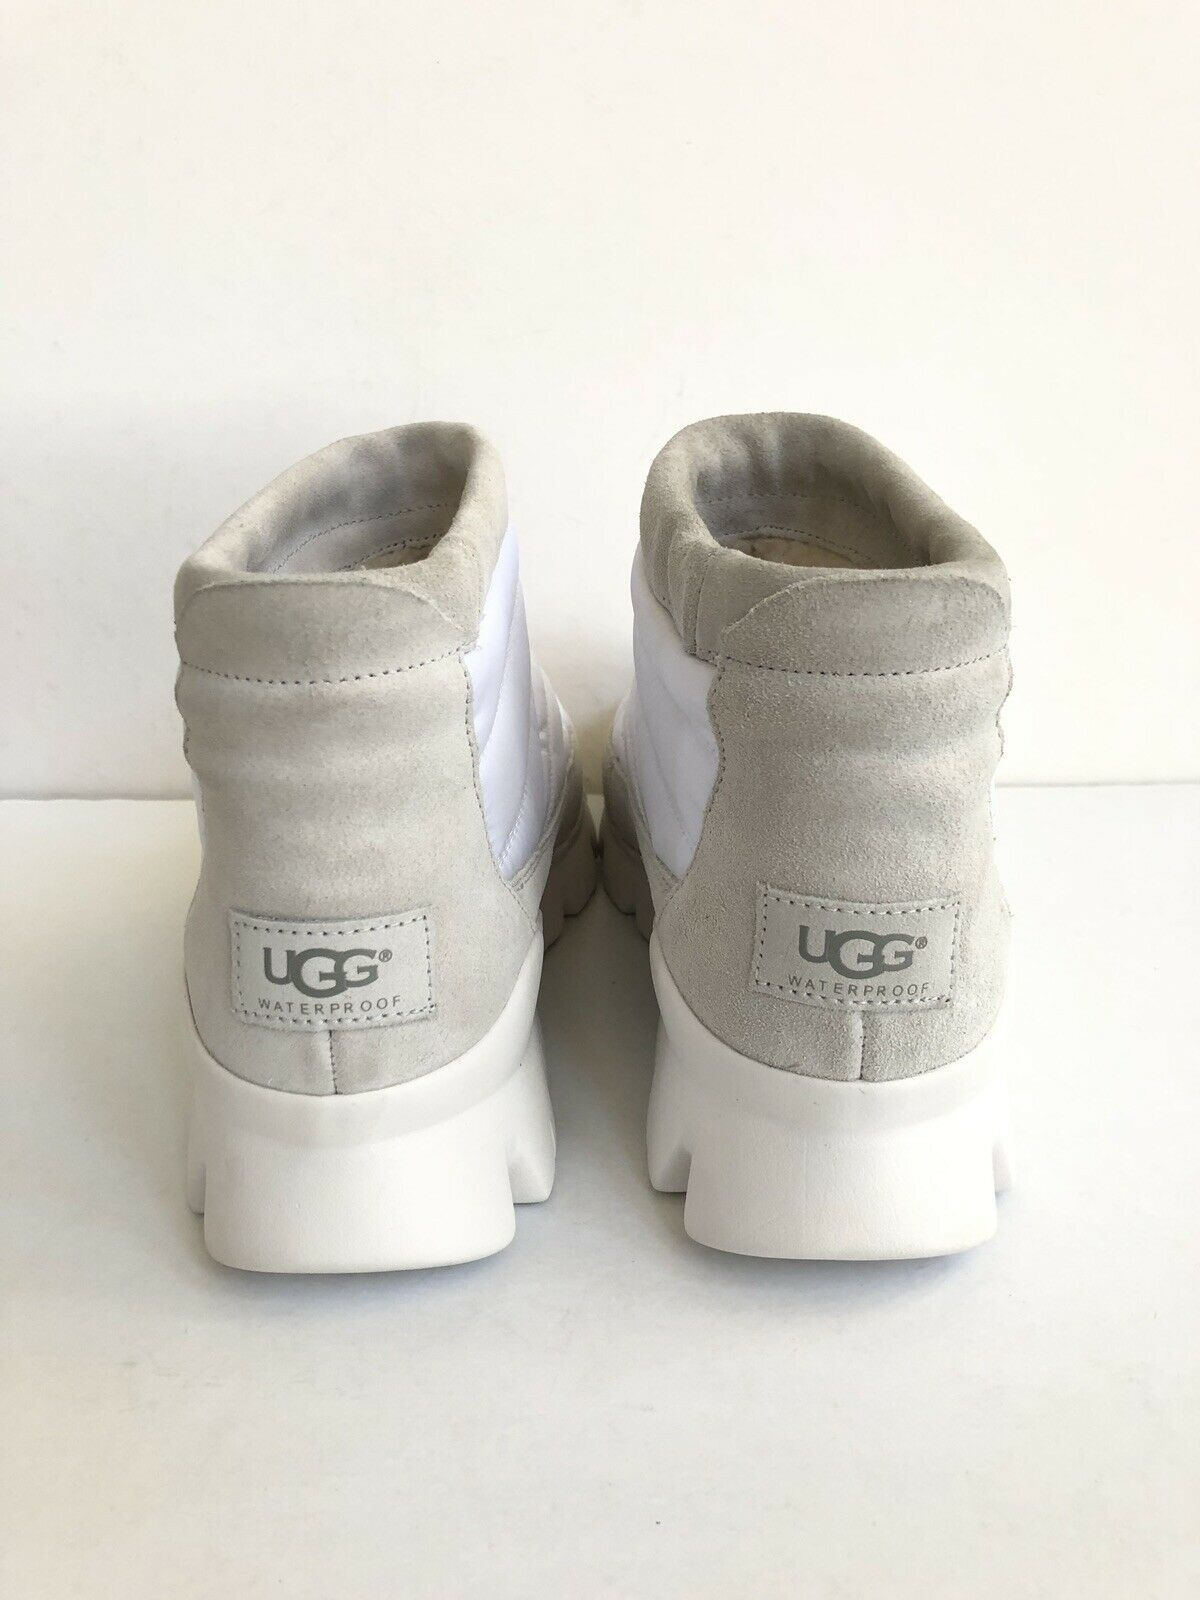 UGG CENTARA WHITE WATERPROOF ANKLE QUILTED SNEAKER SHOE US 7.5 / EU 38.5 /UK 5.5 image 4